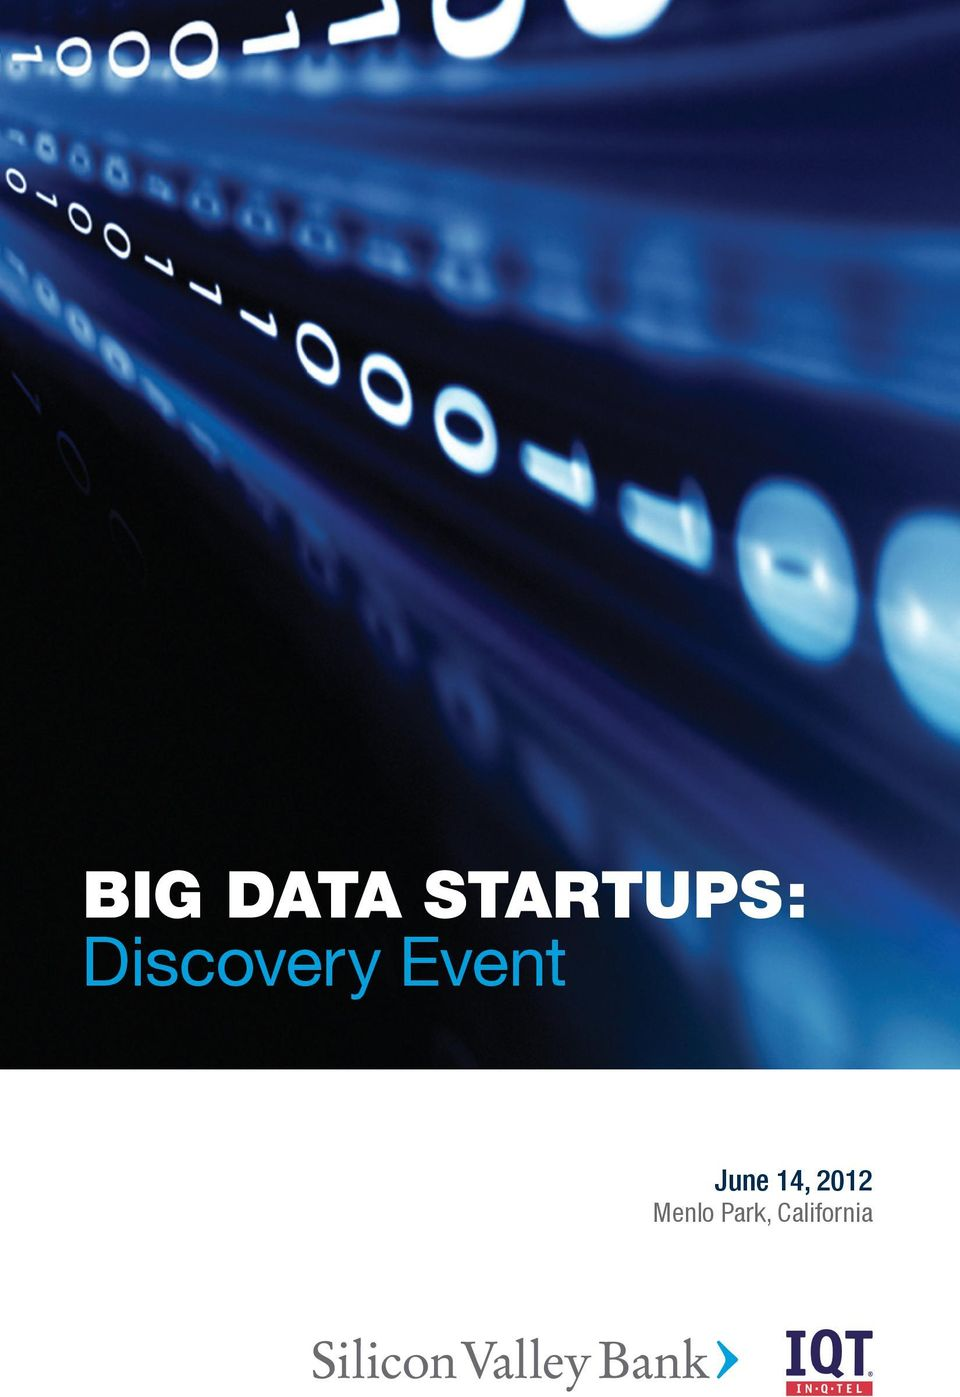 Discovery Event